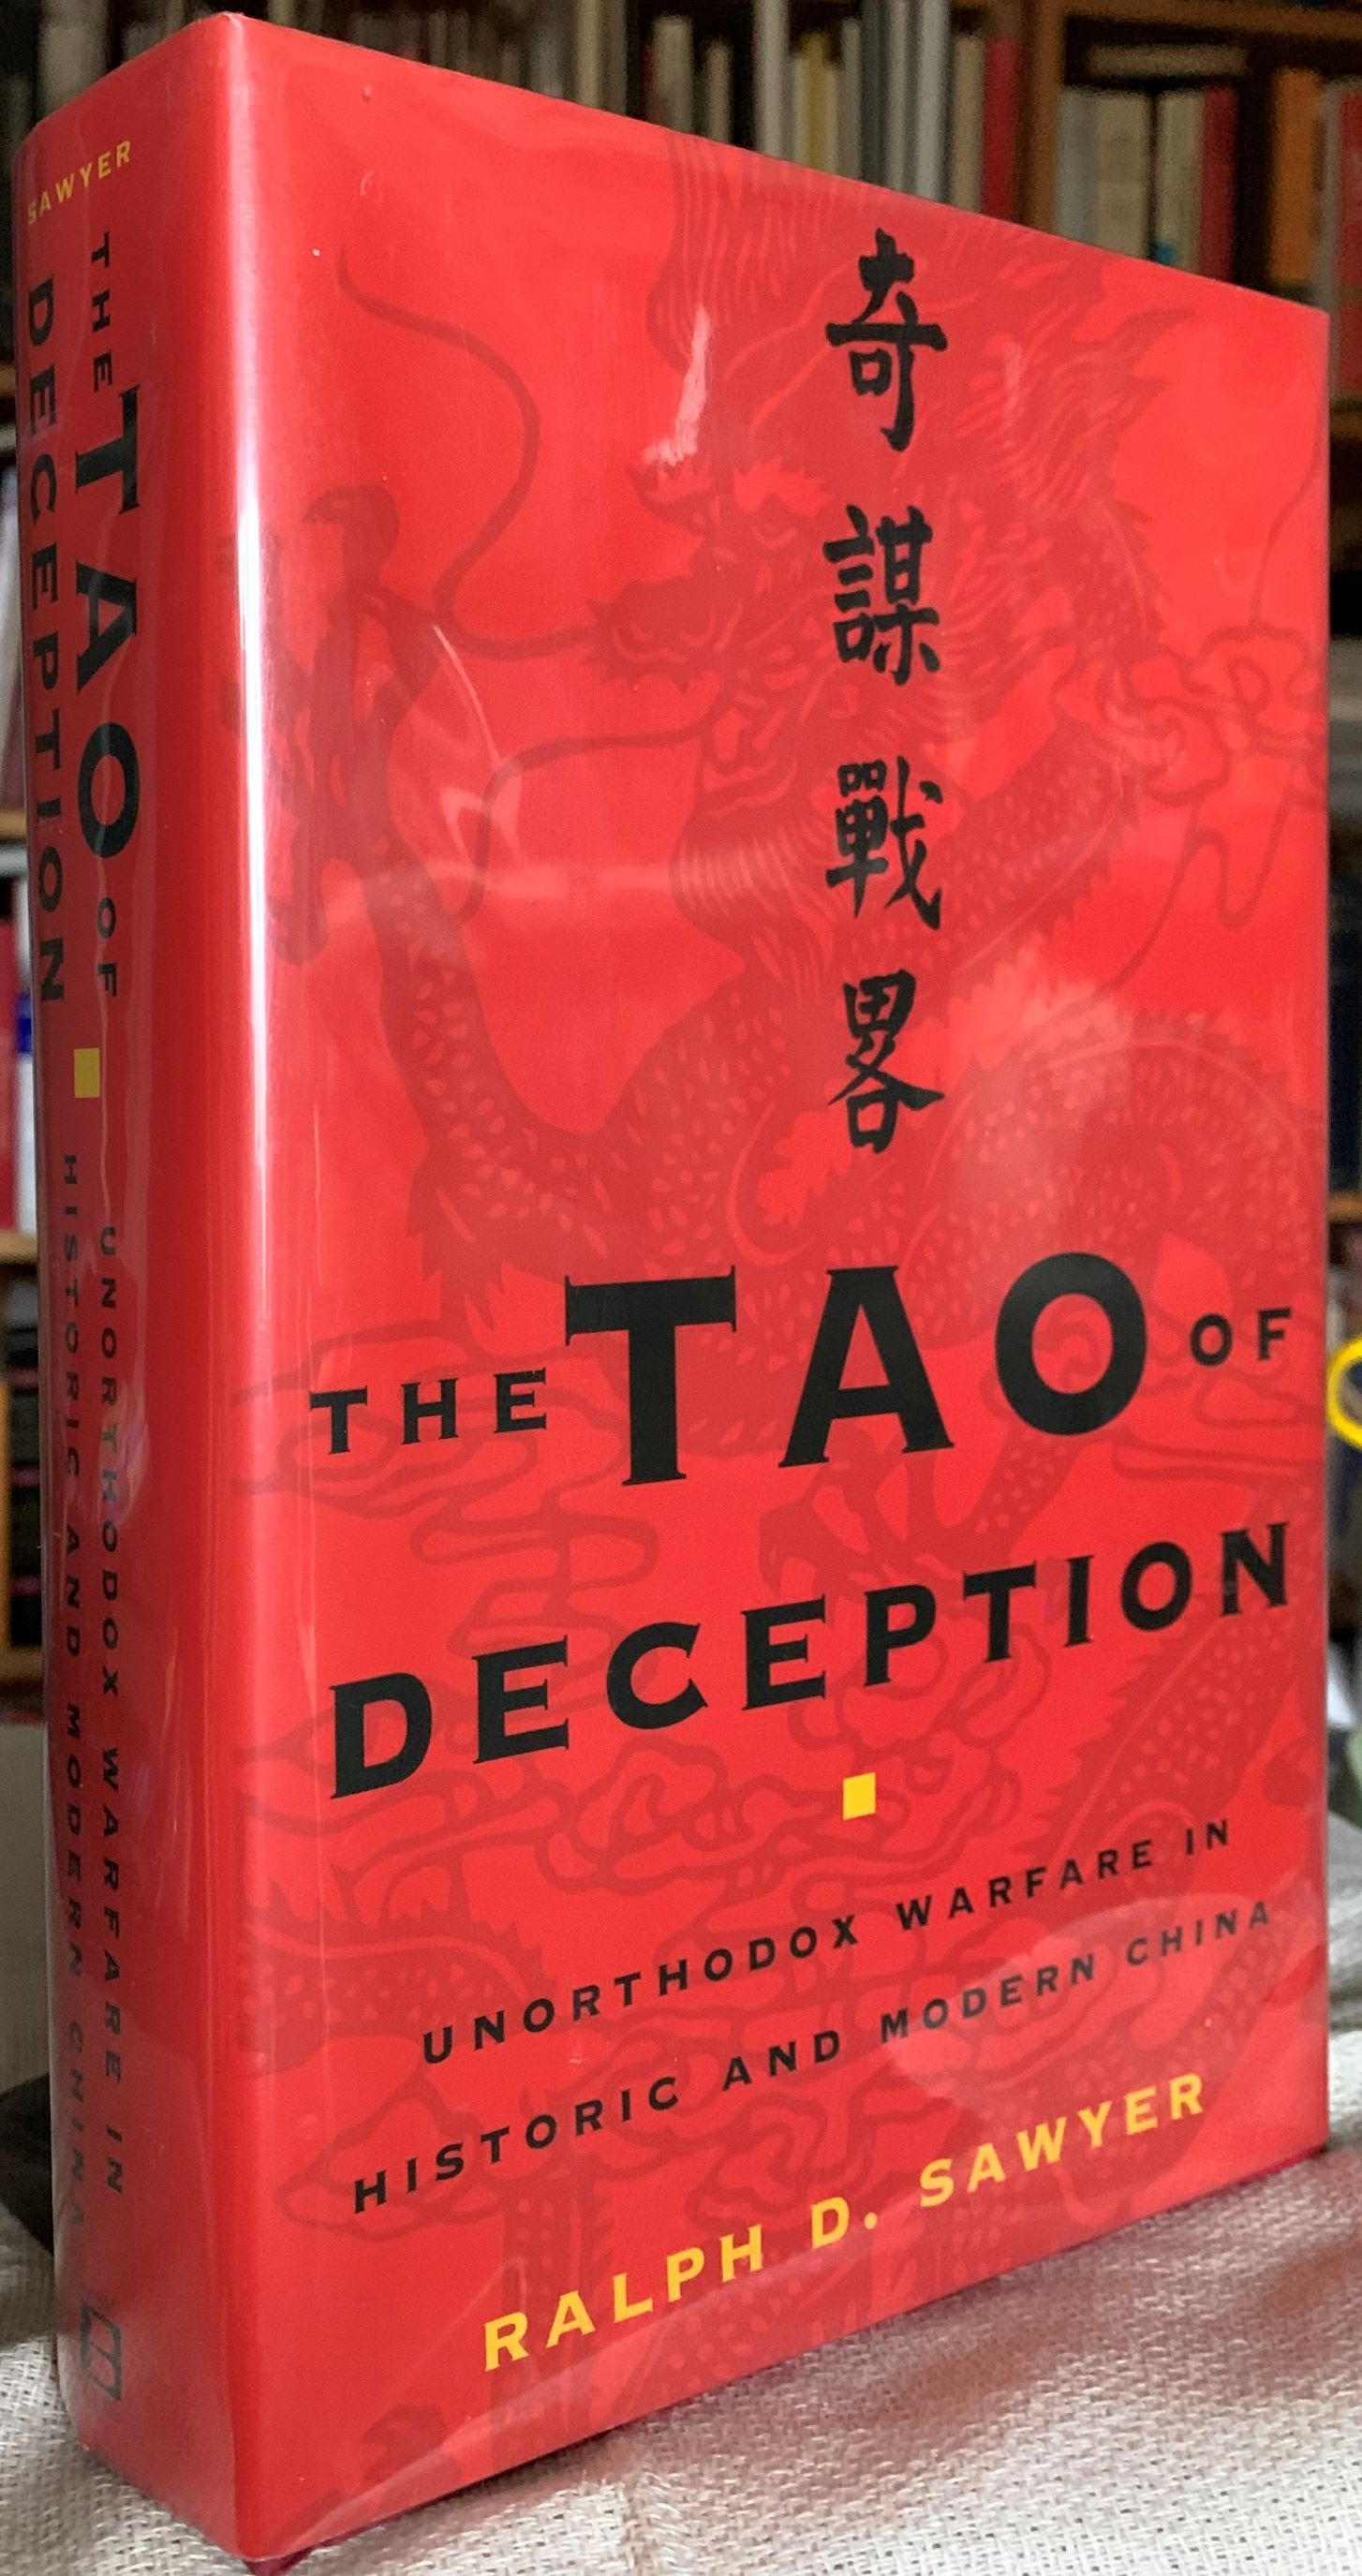 Image for The Tao of Deception, Unorthodox Warfare in Historic and Modern China.